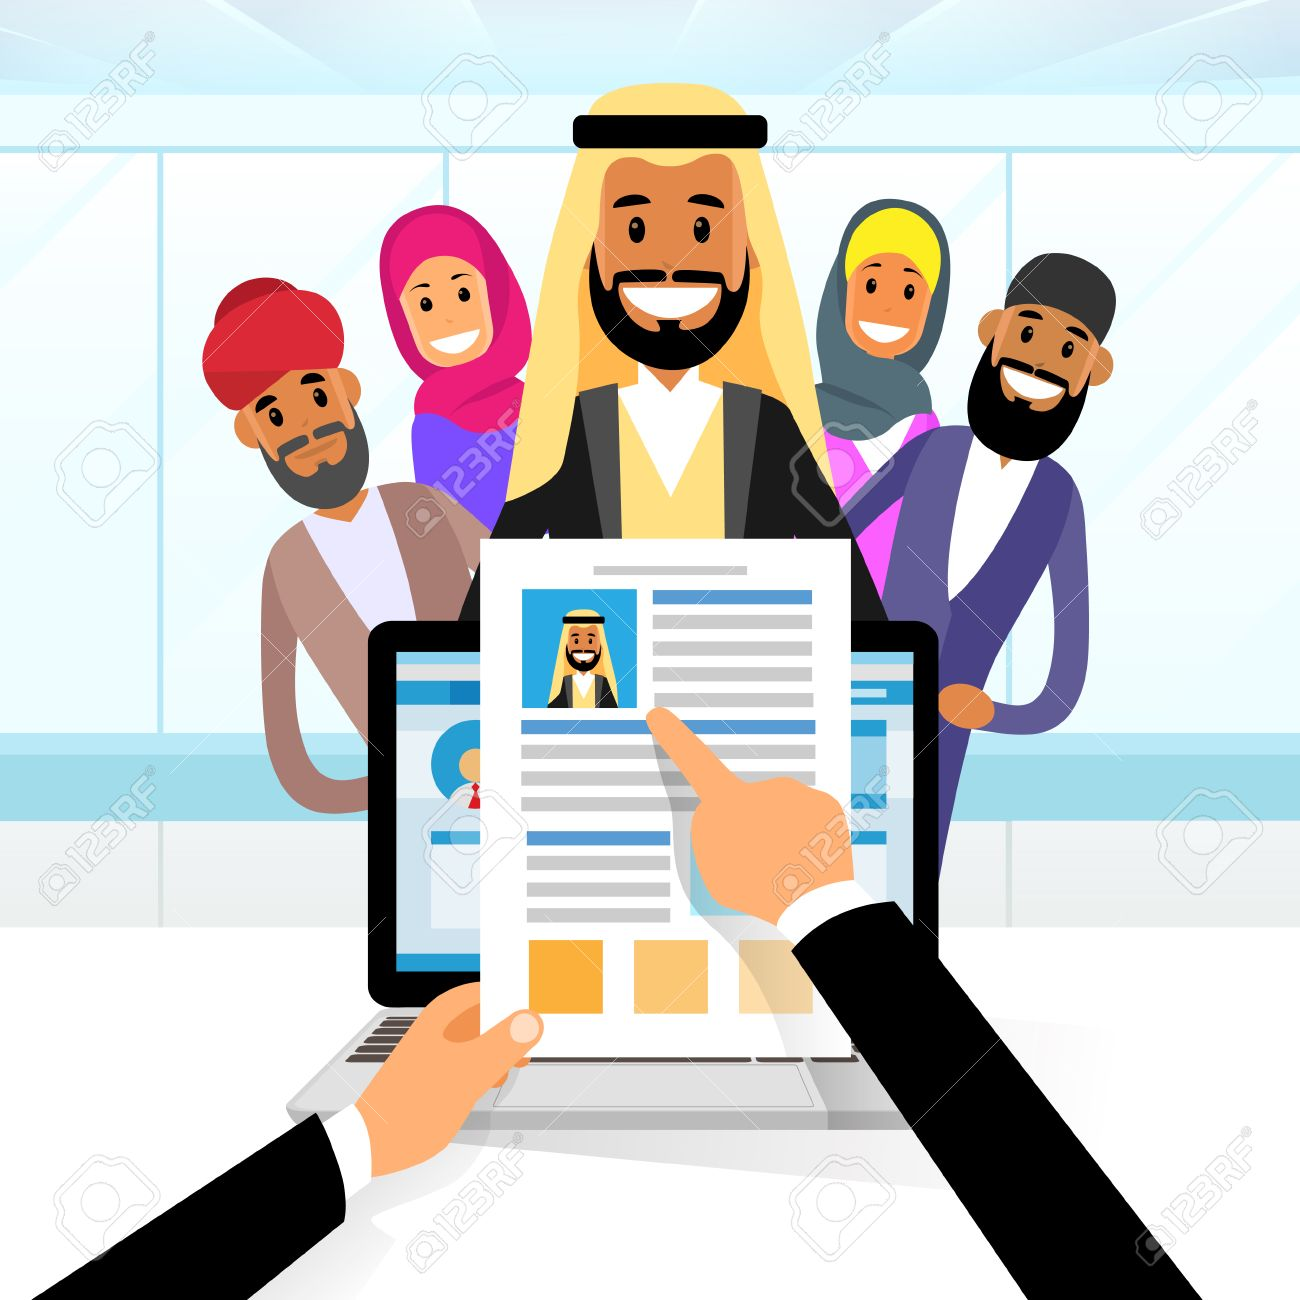 arab curriculum vitae recruitment candidate job position hands hold cv profile choose from arabic group